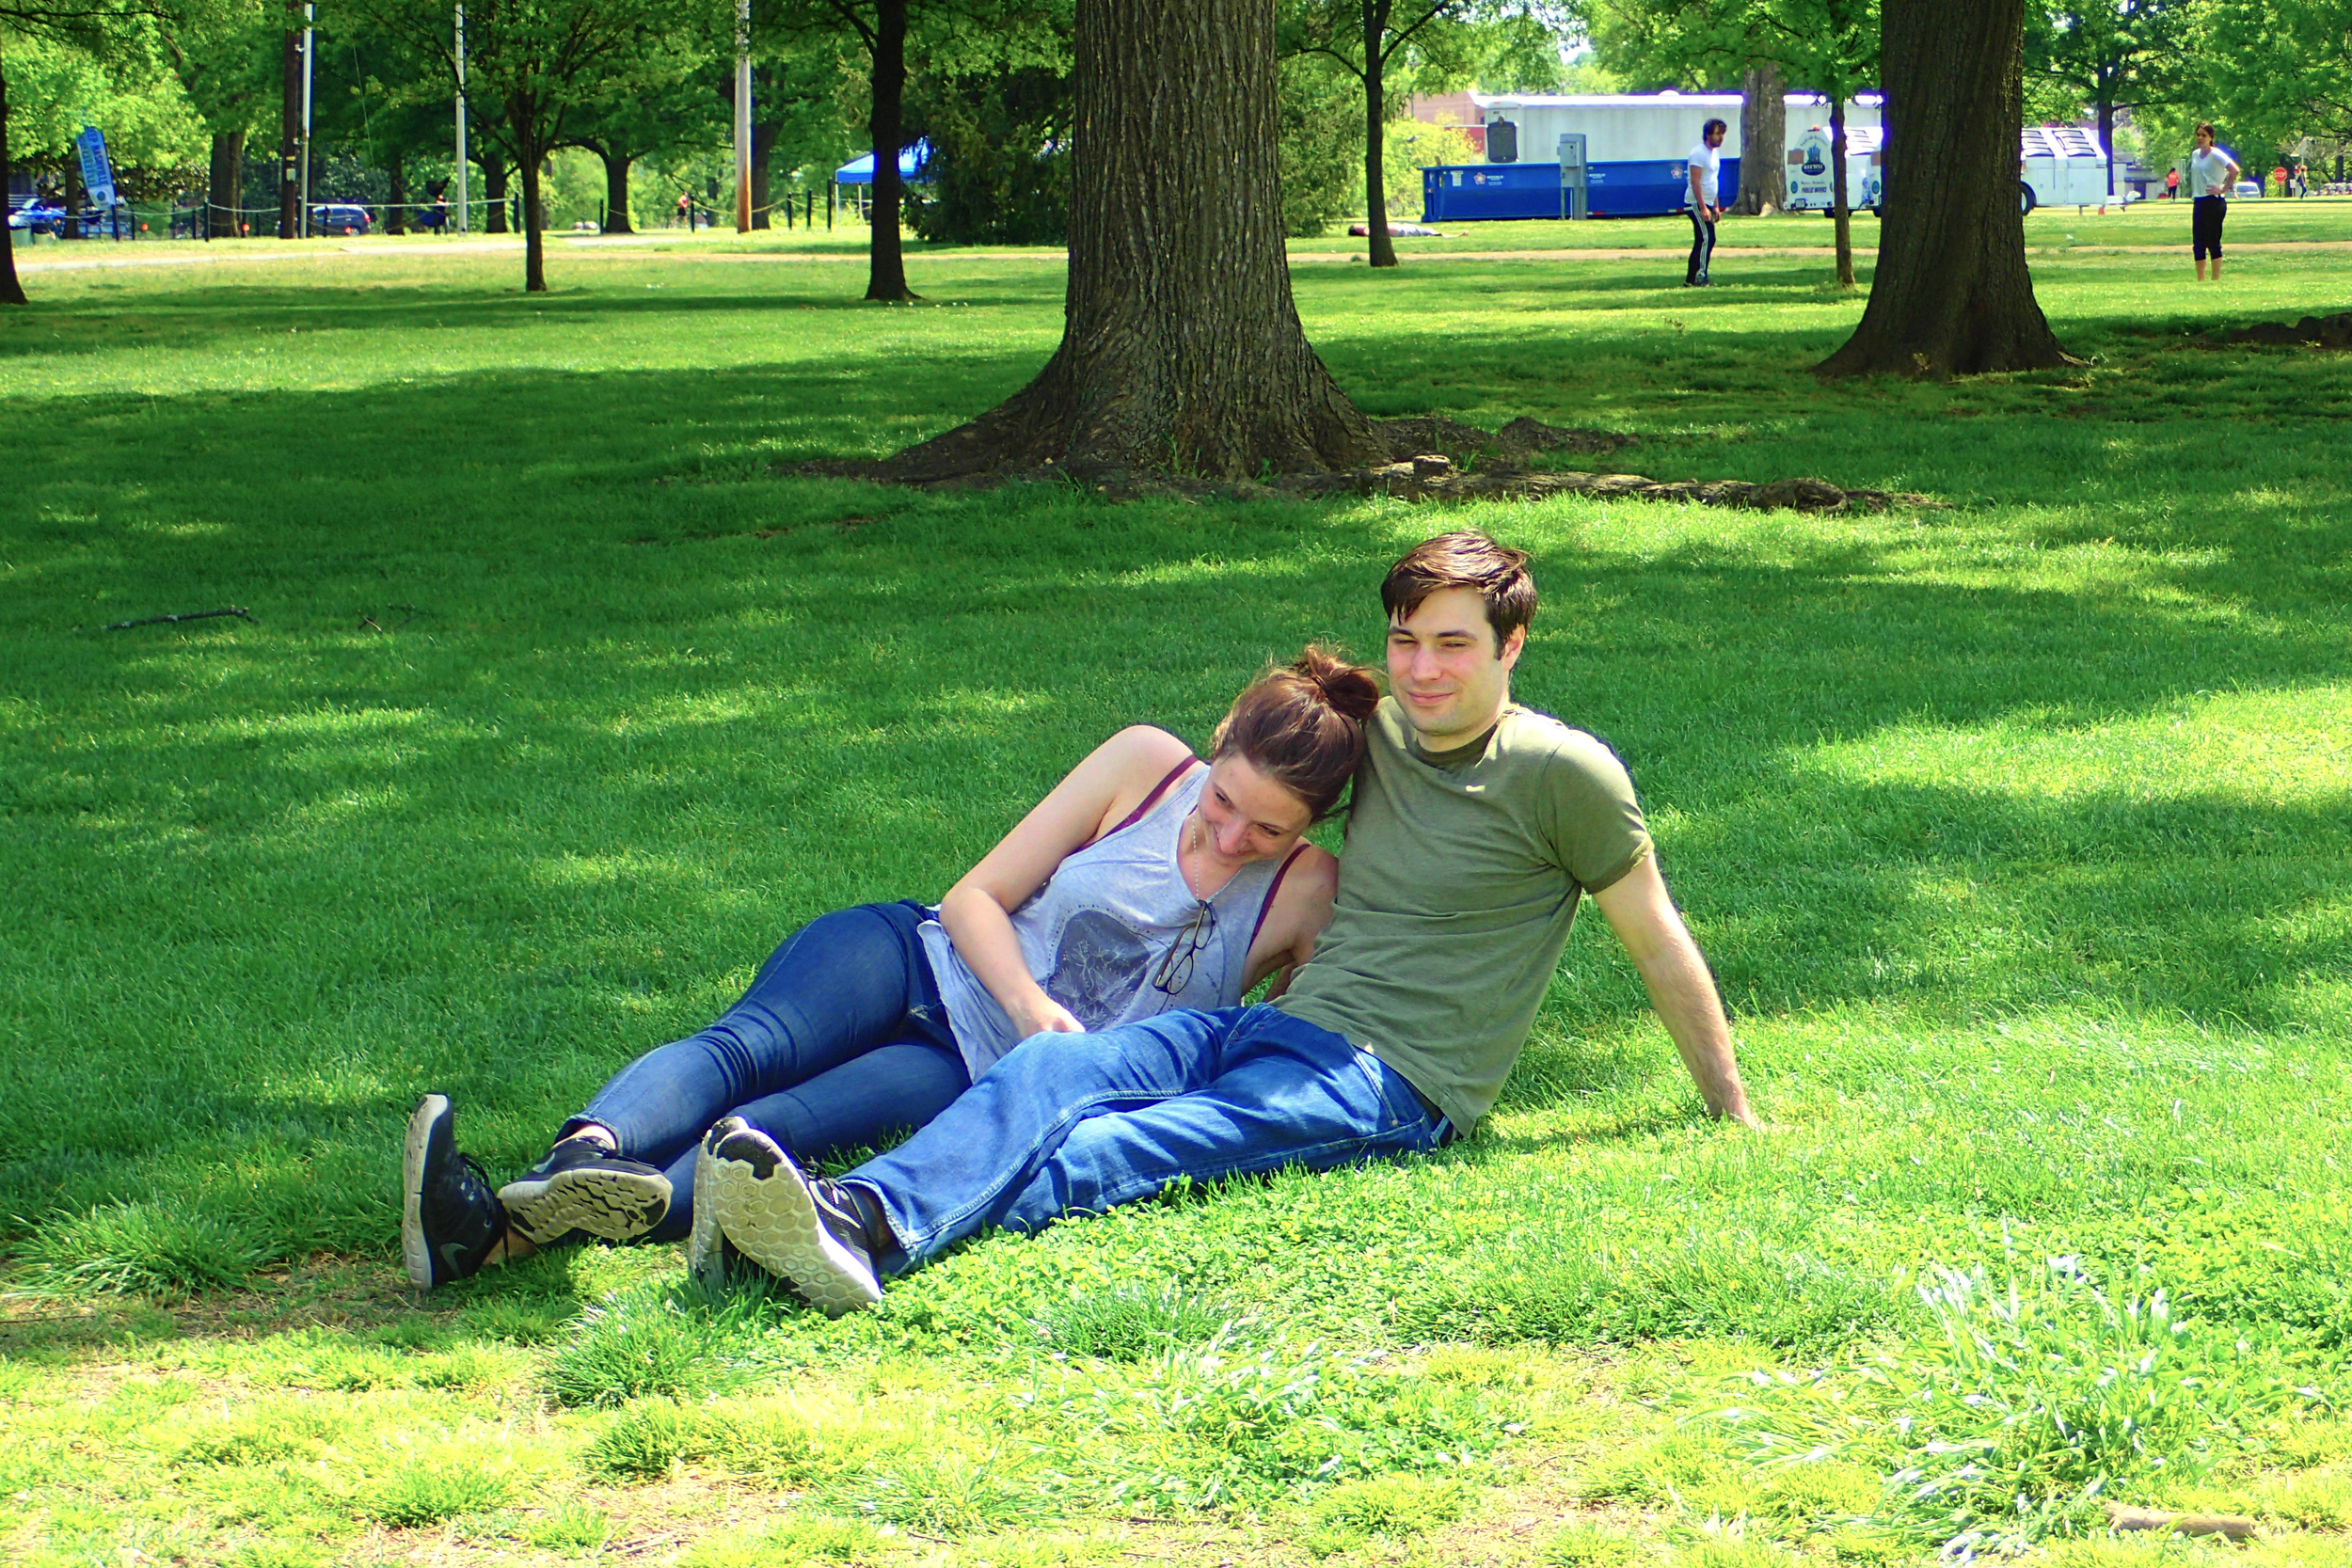 Jess and James lounging on the grass in Nashville